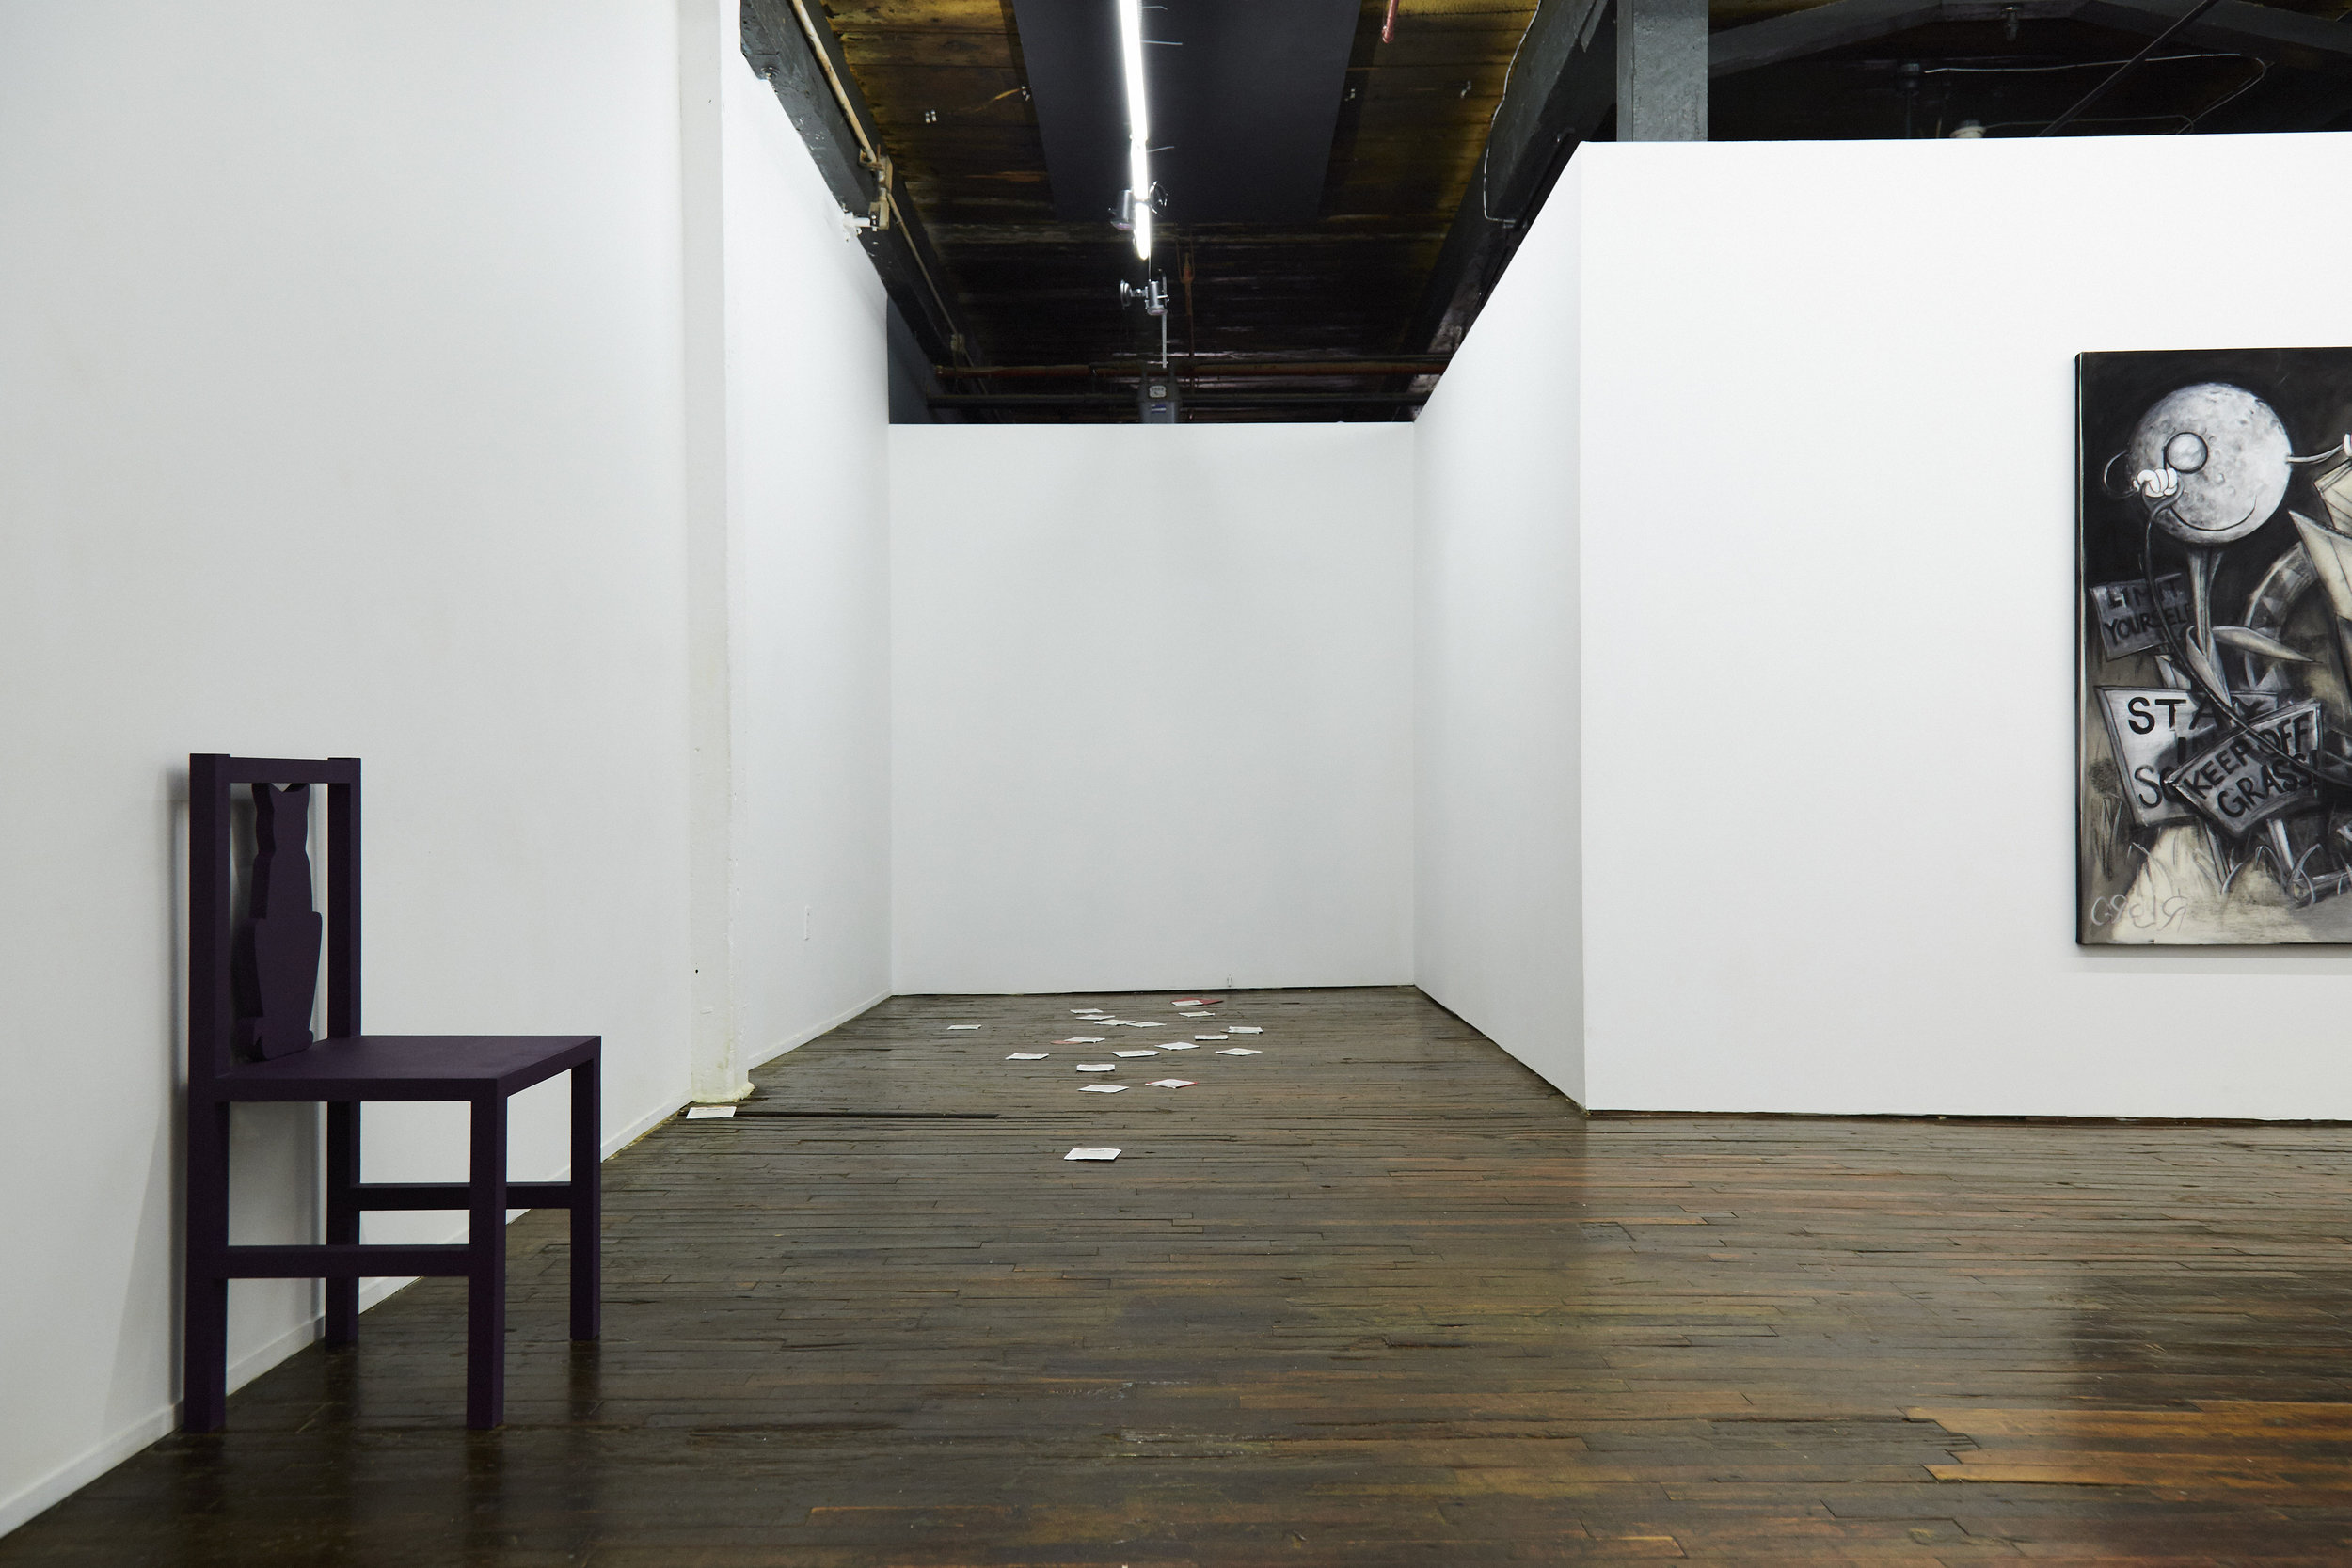 Jonathan Santoro, Michael Assiff, and R.Lord,  Toxoplasmosis  installation view